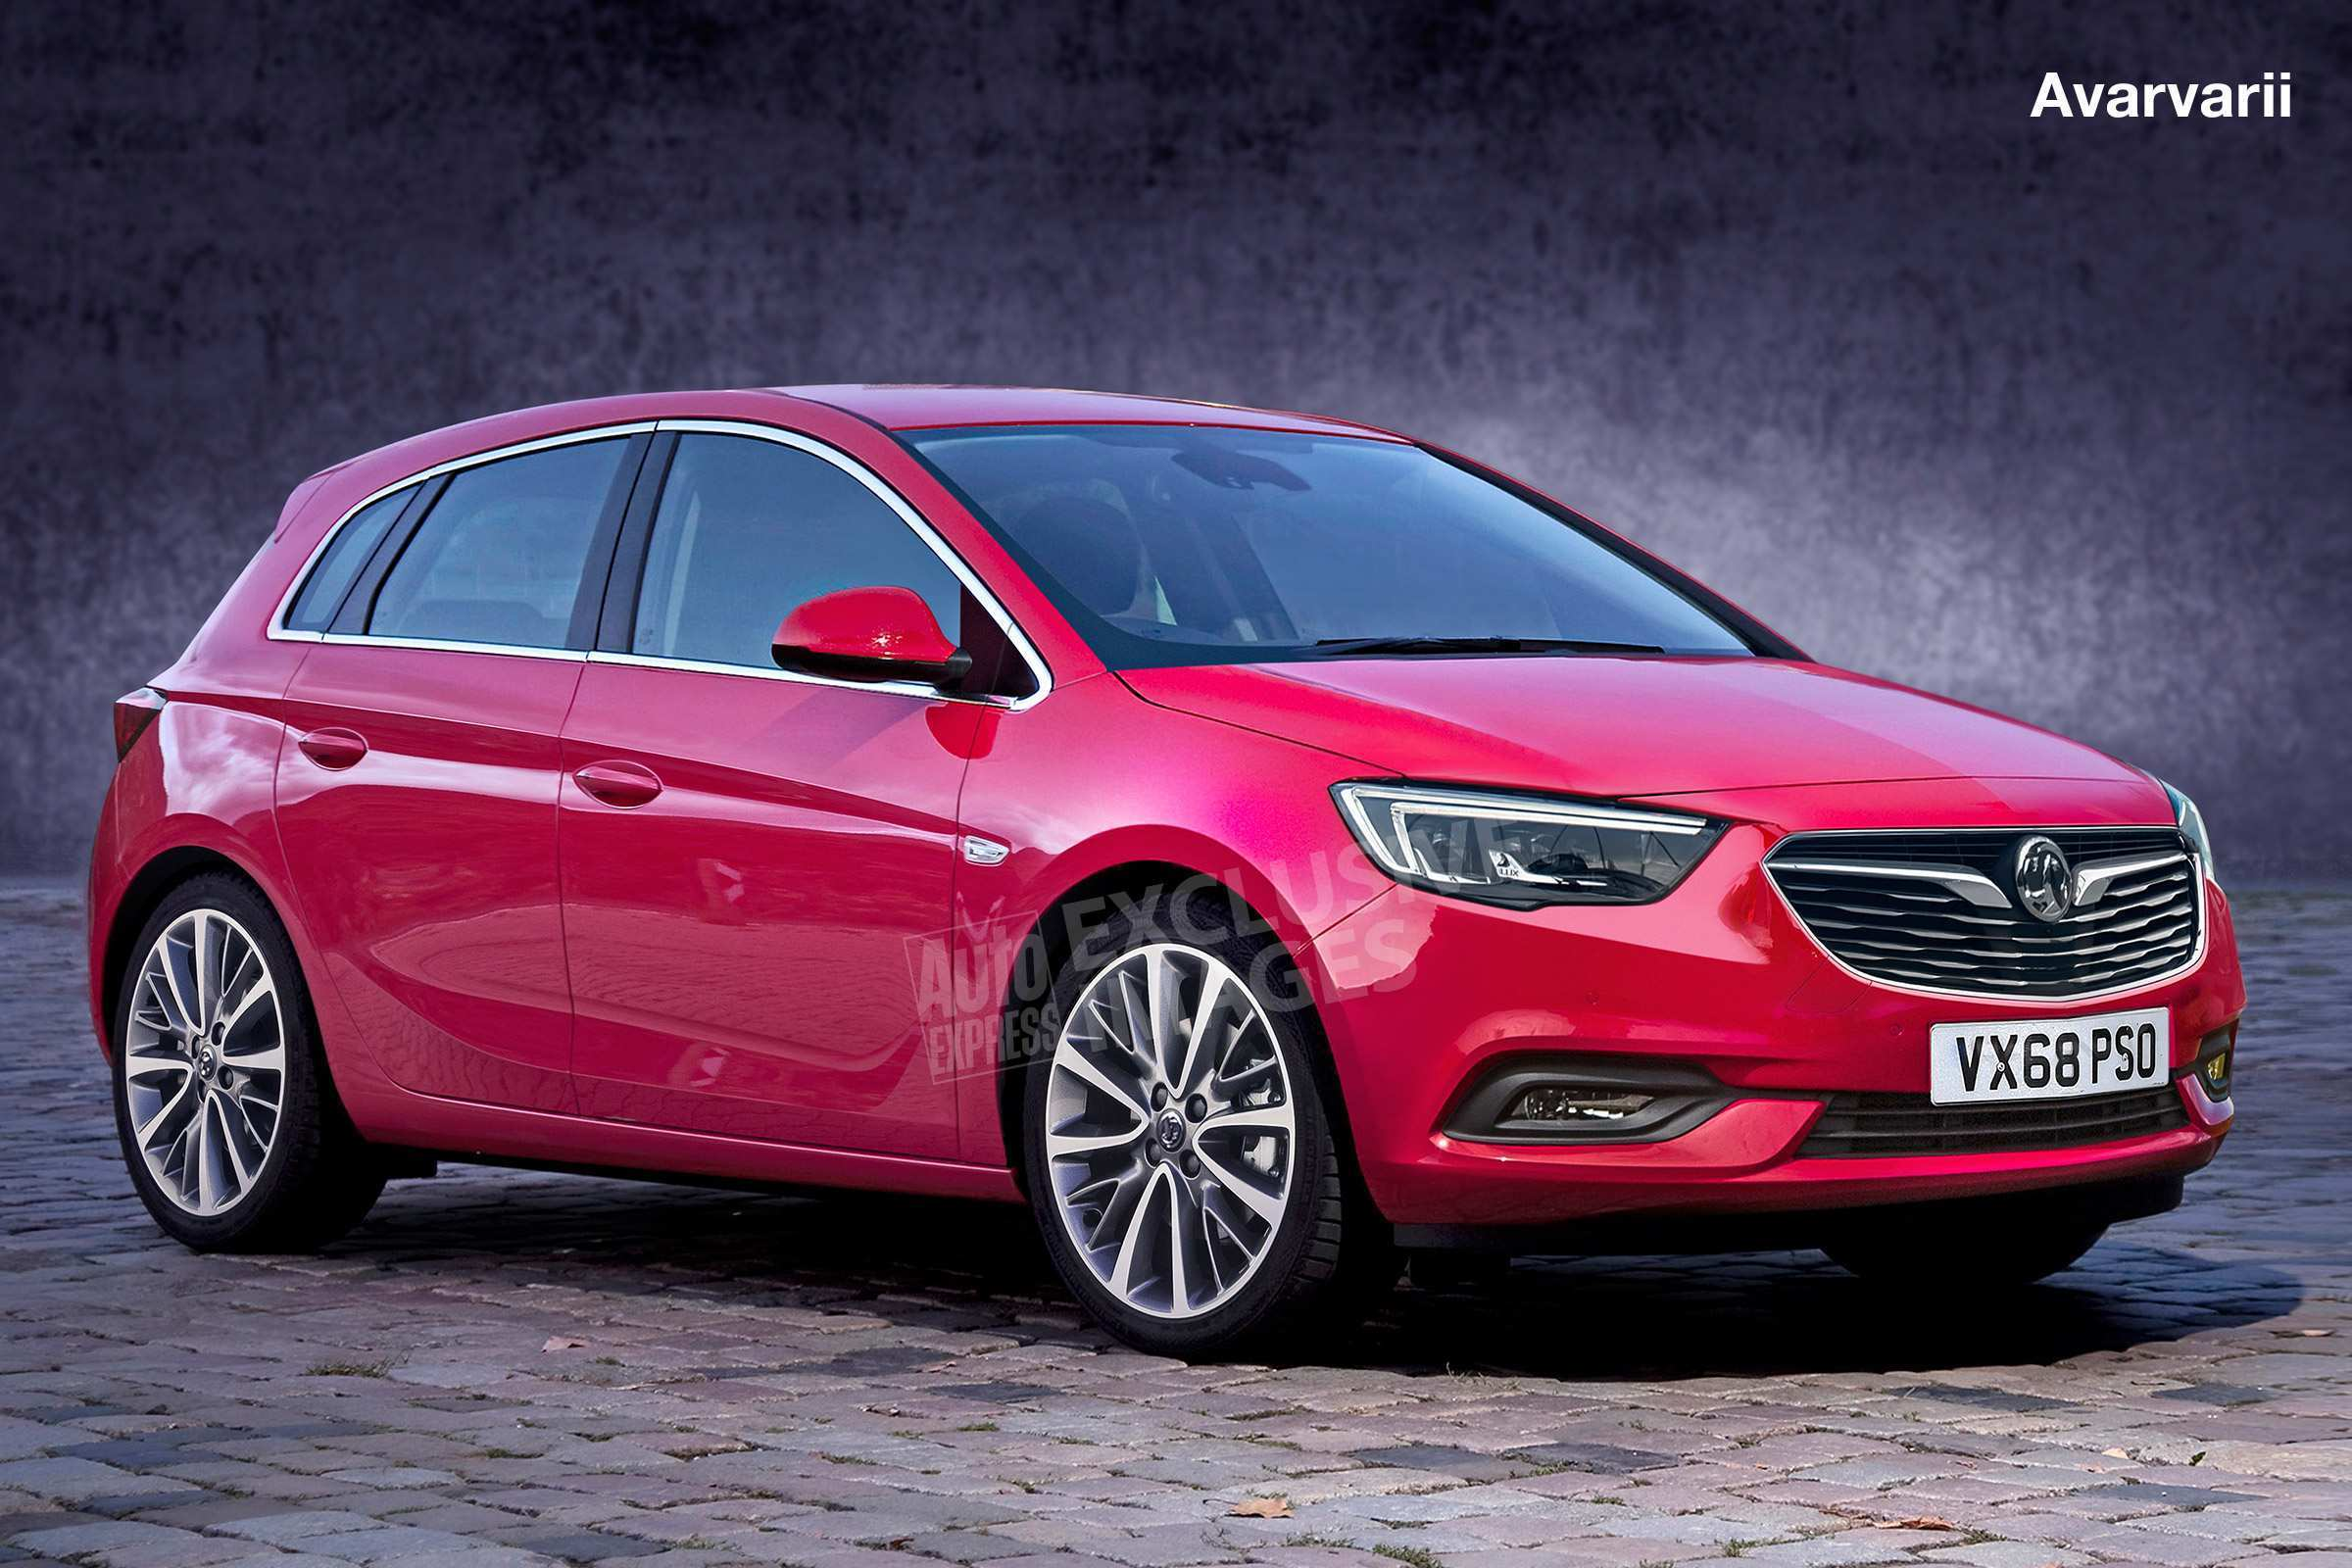 87 All New 2019 Vauxhall Corsa VXR Specs And Review